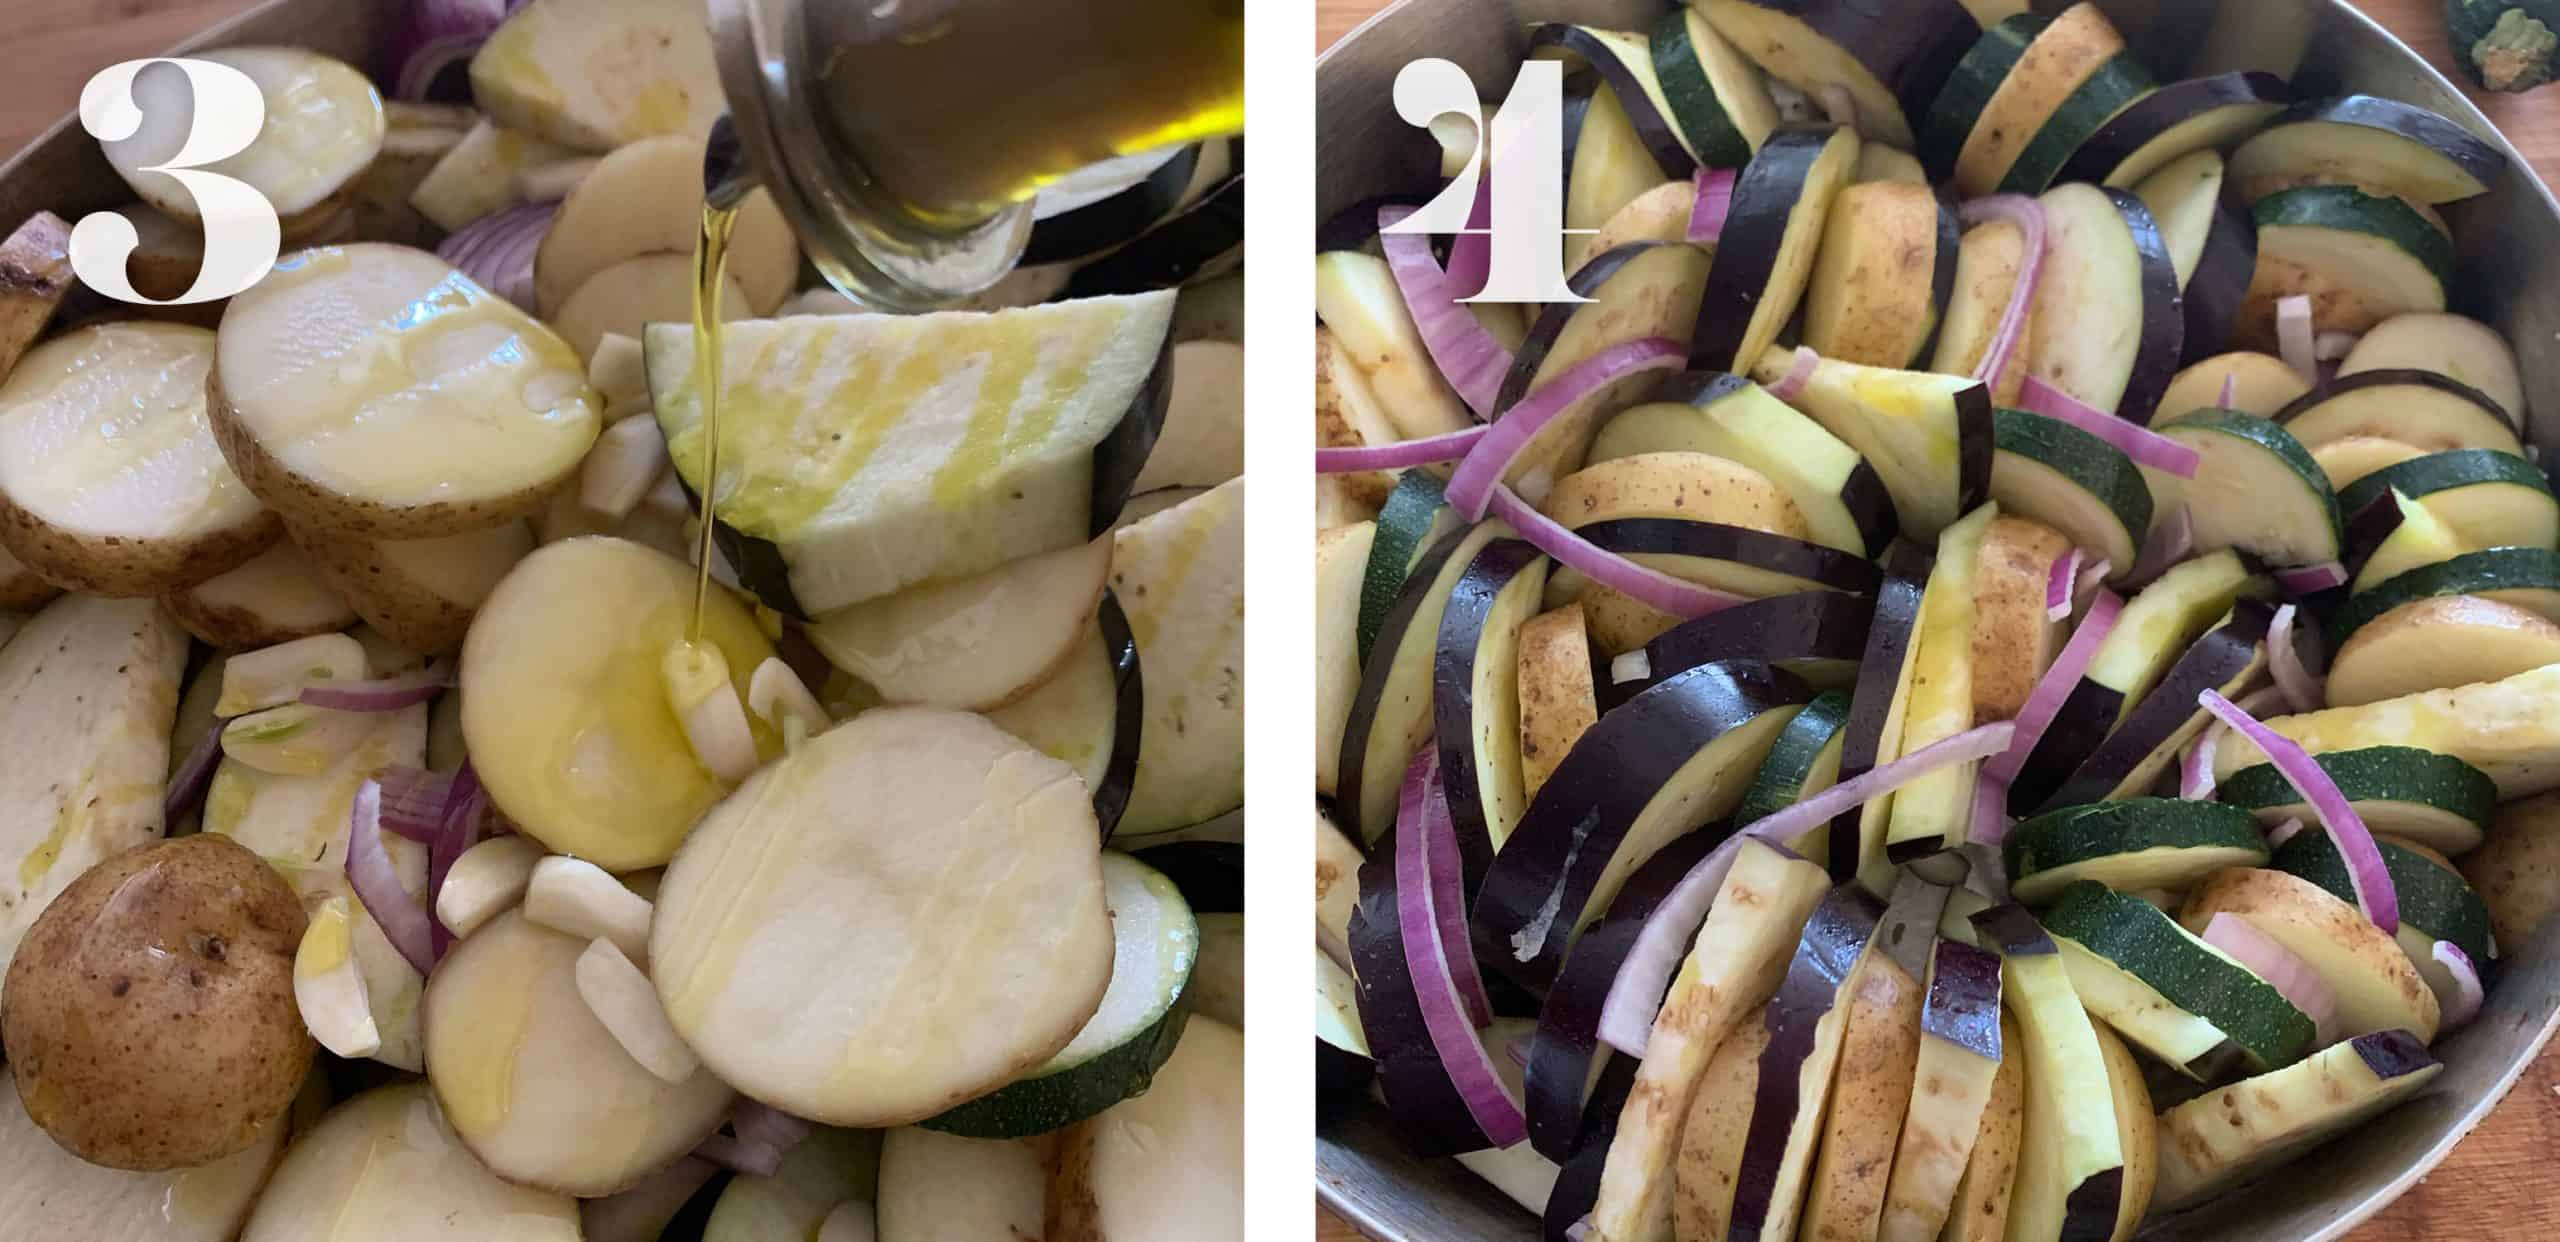 Adding olive oil and stacking veggies for Greek Ratatouille - Briam.